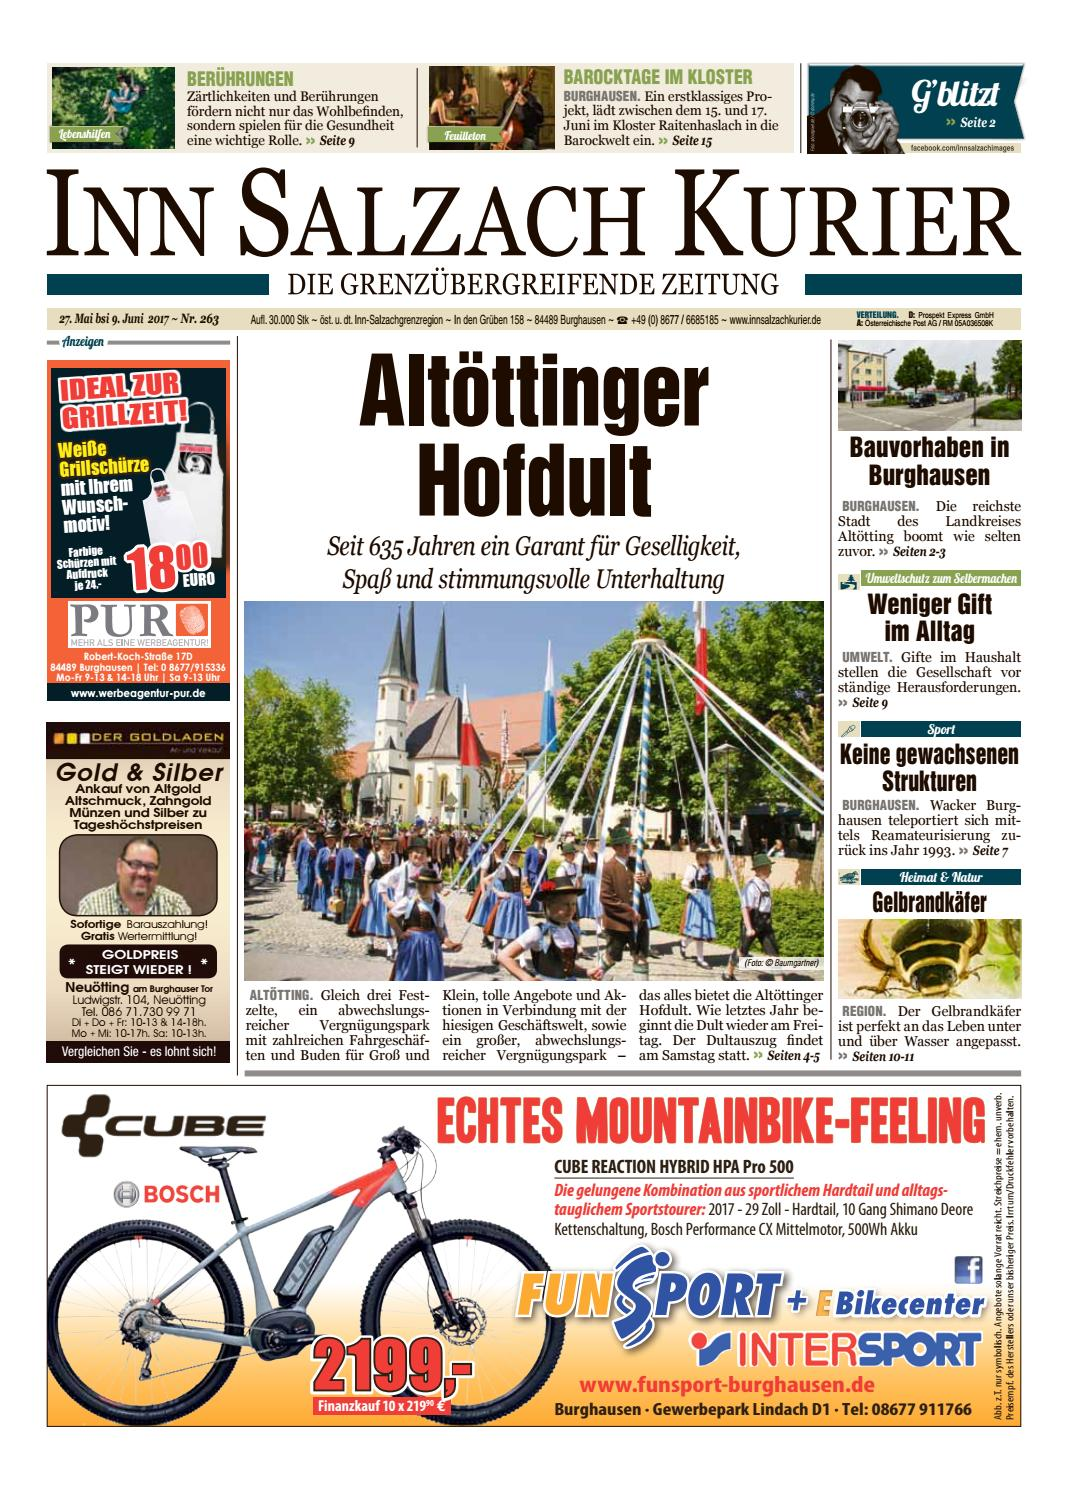 inn salzach kurier ausgabe 263 by inn salzach kurier. Black Bedroom Furniture Sets. Home Design Ideas